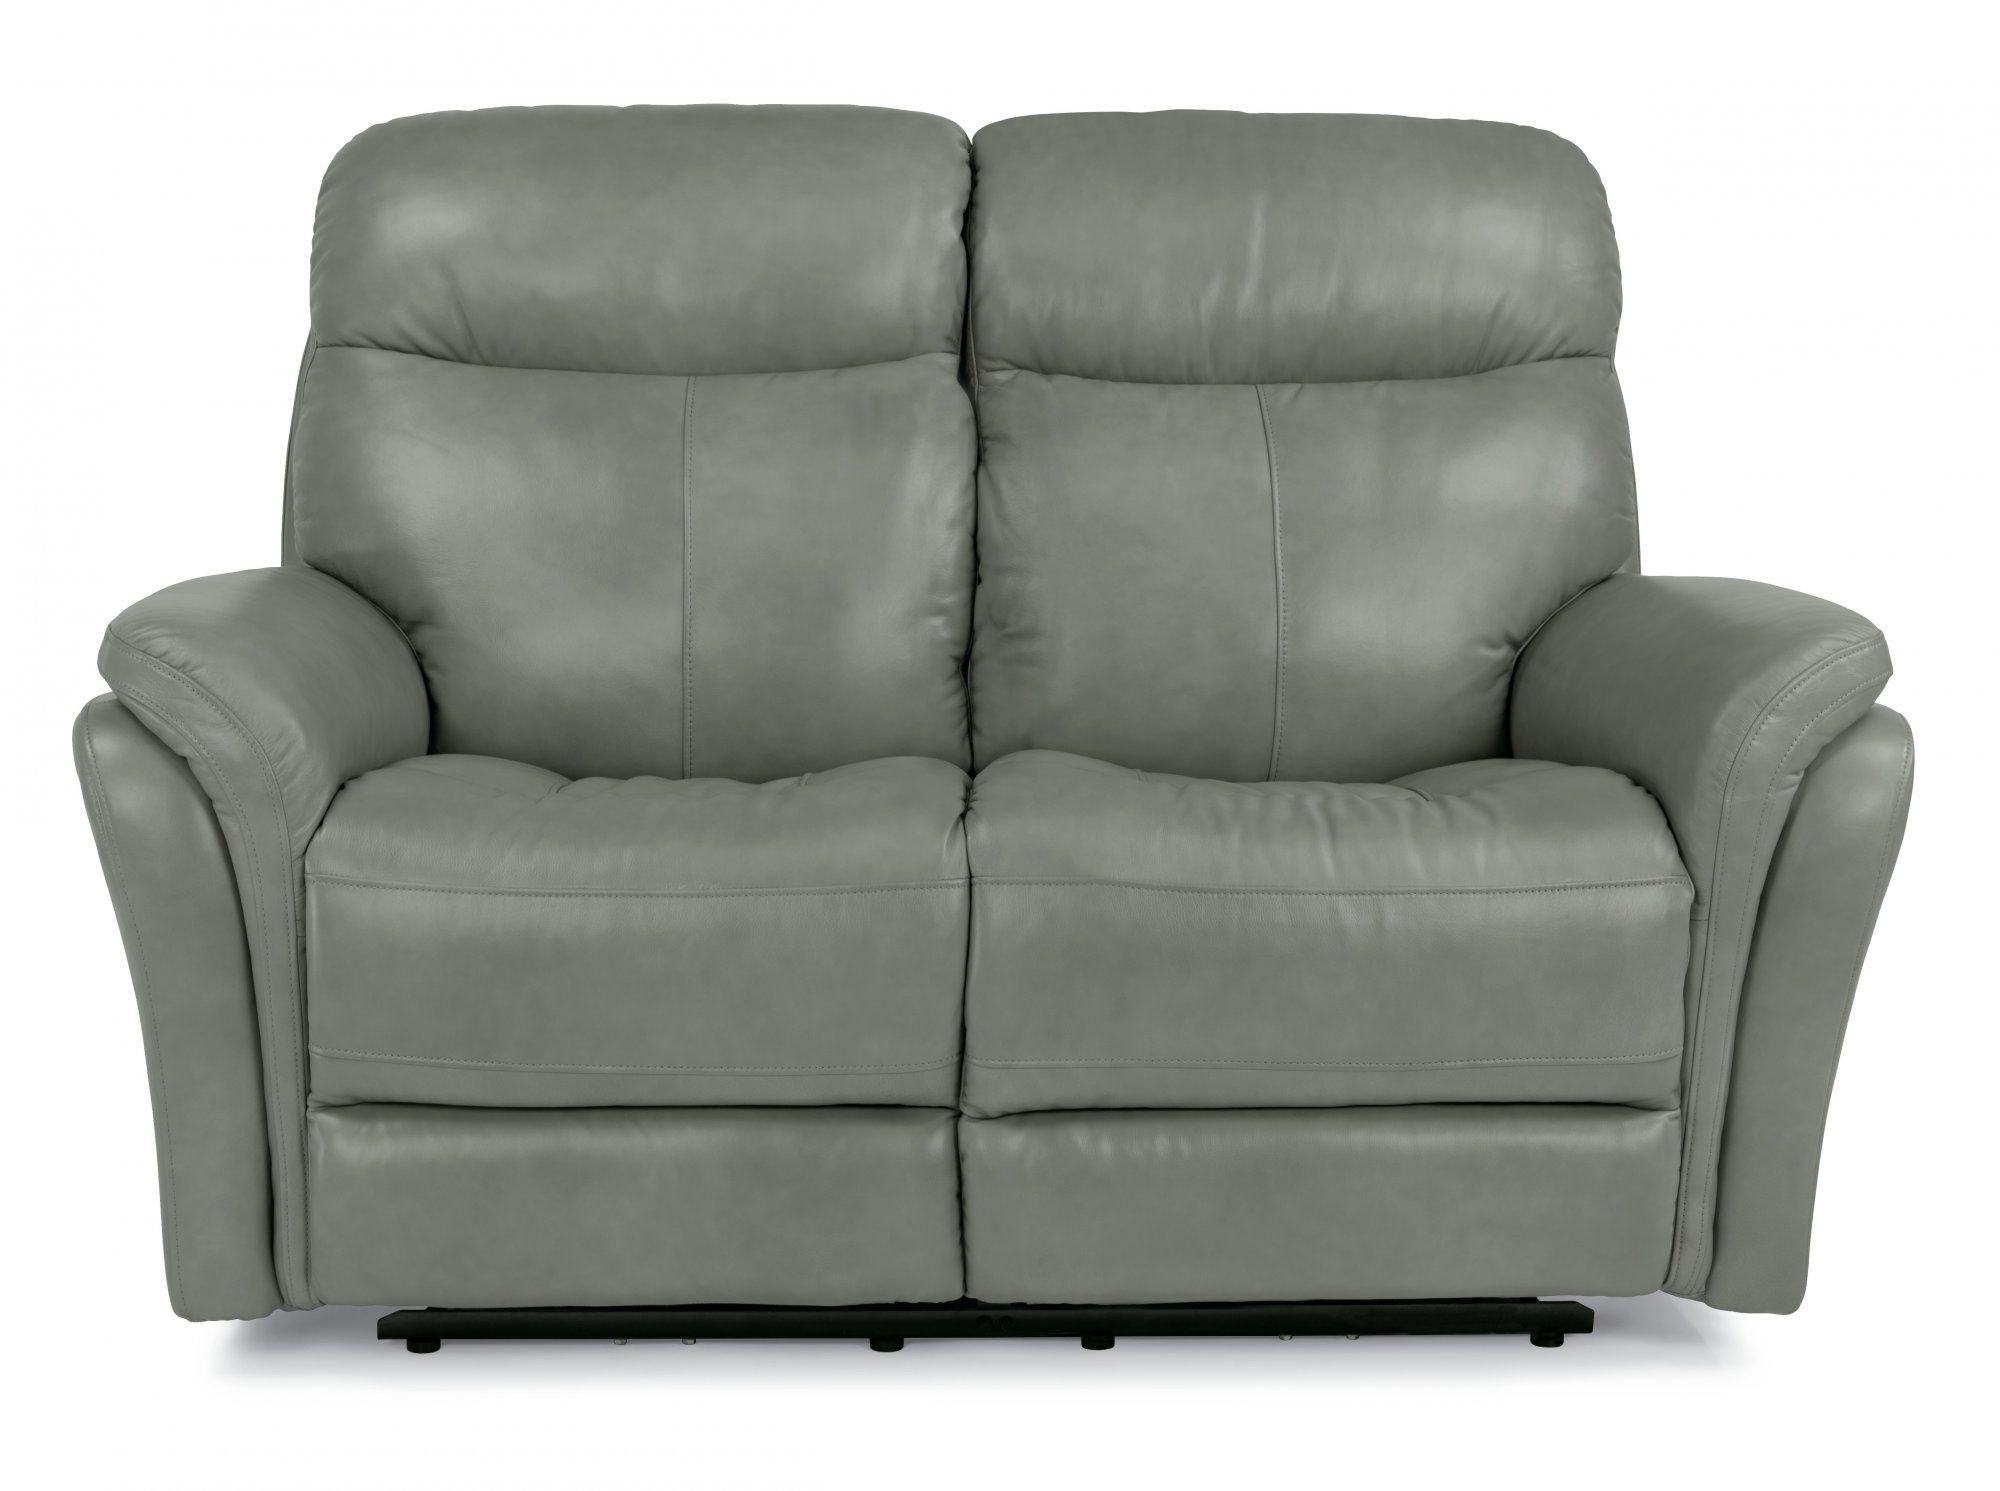 electric in theater delange reclining adjustable storage power leather headrests sofa loveseat seats sofas armrests shop with